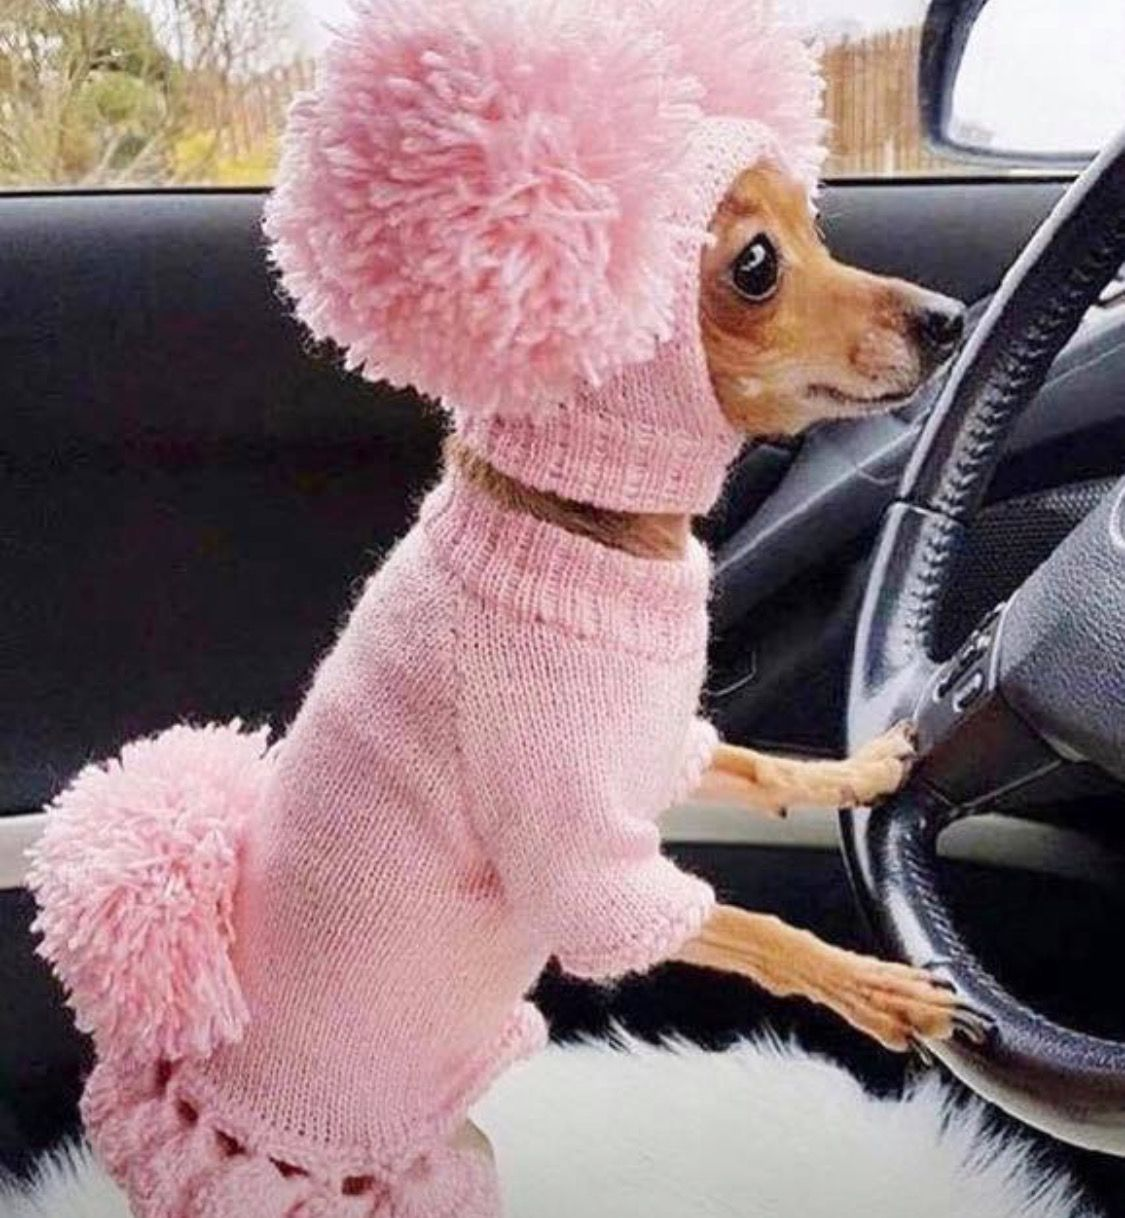 OMG, so funny my sister driving car Cute baby animals